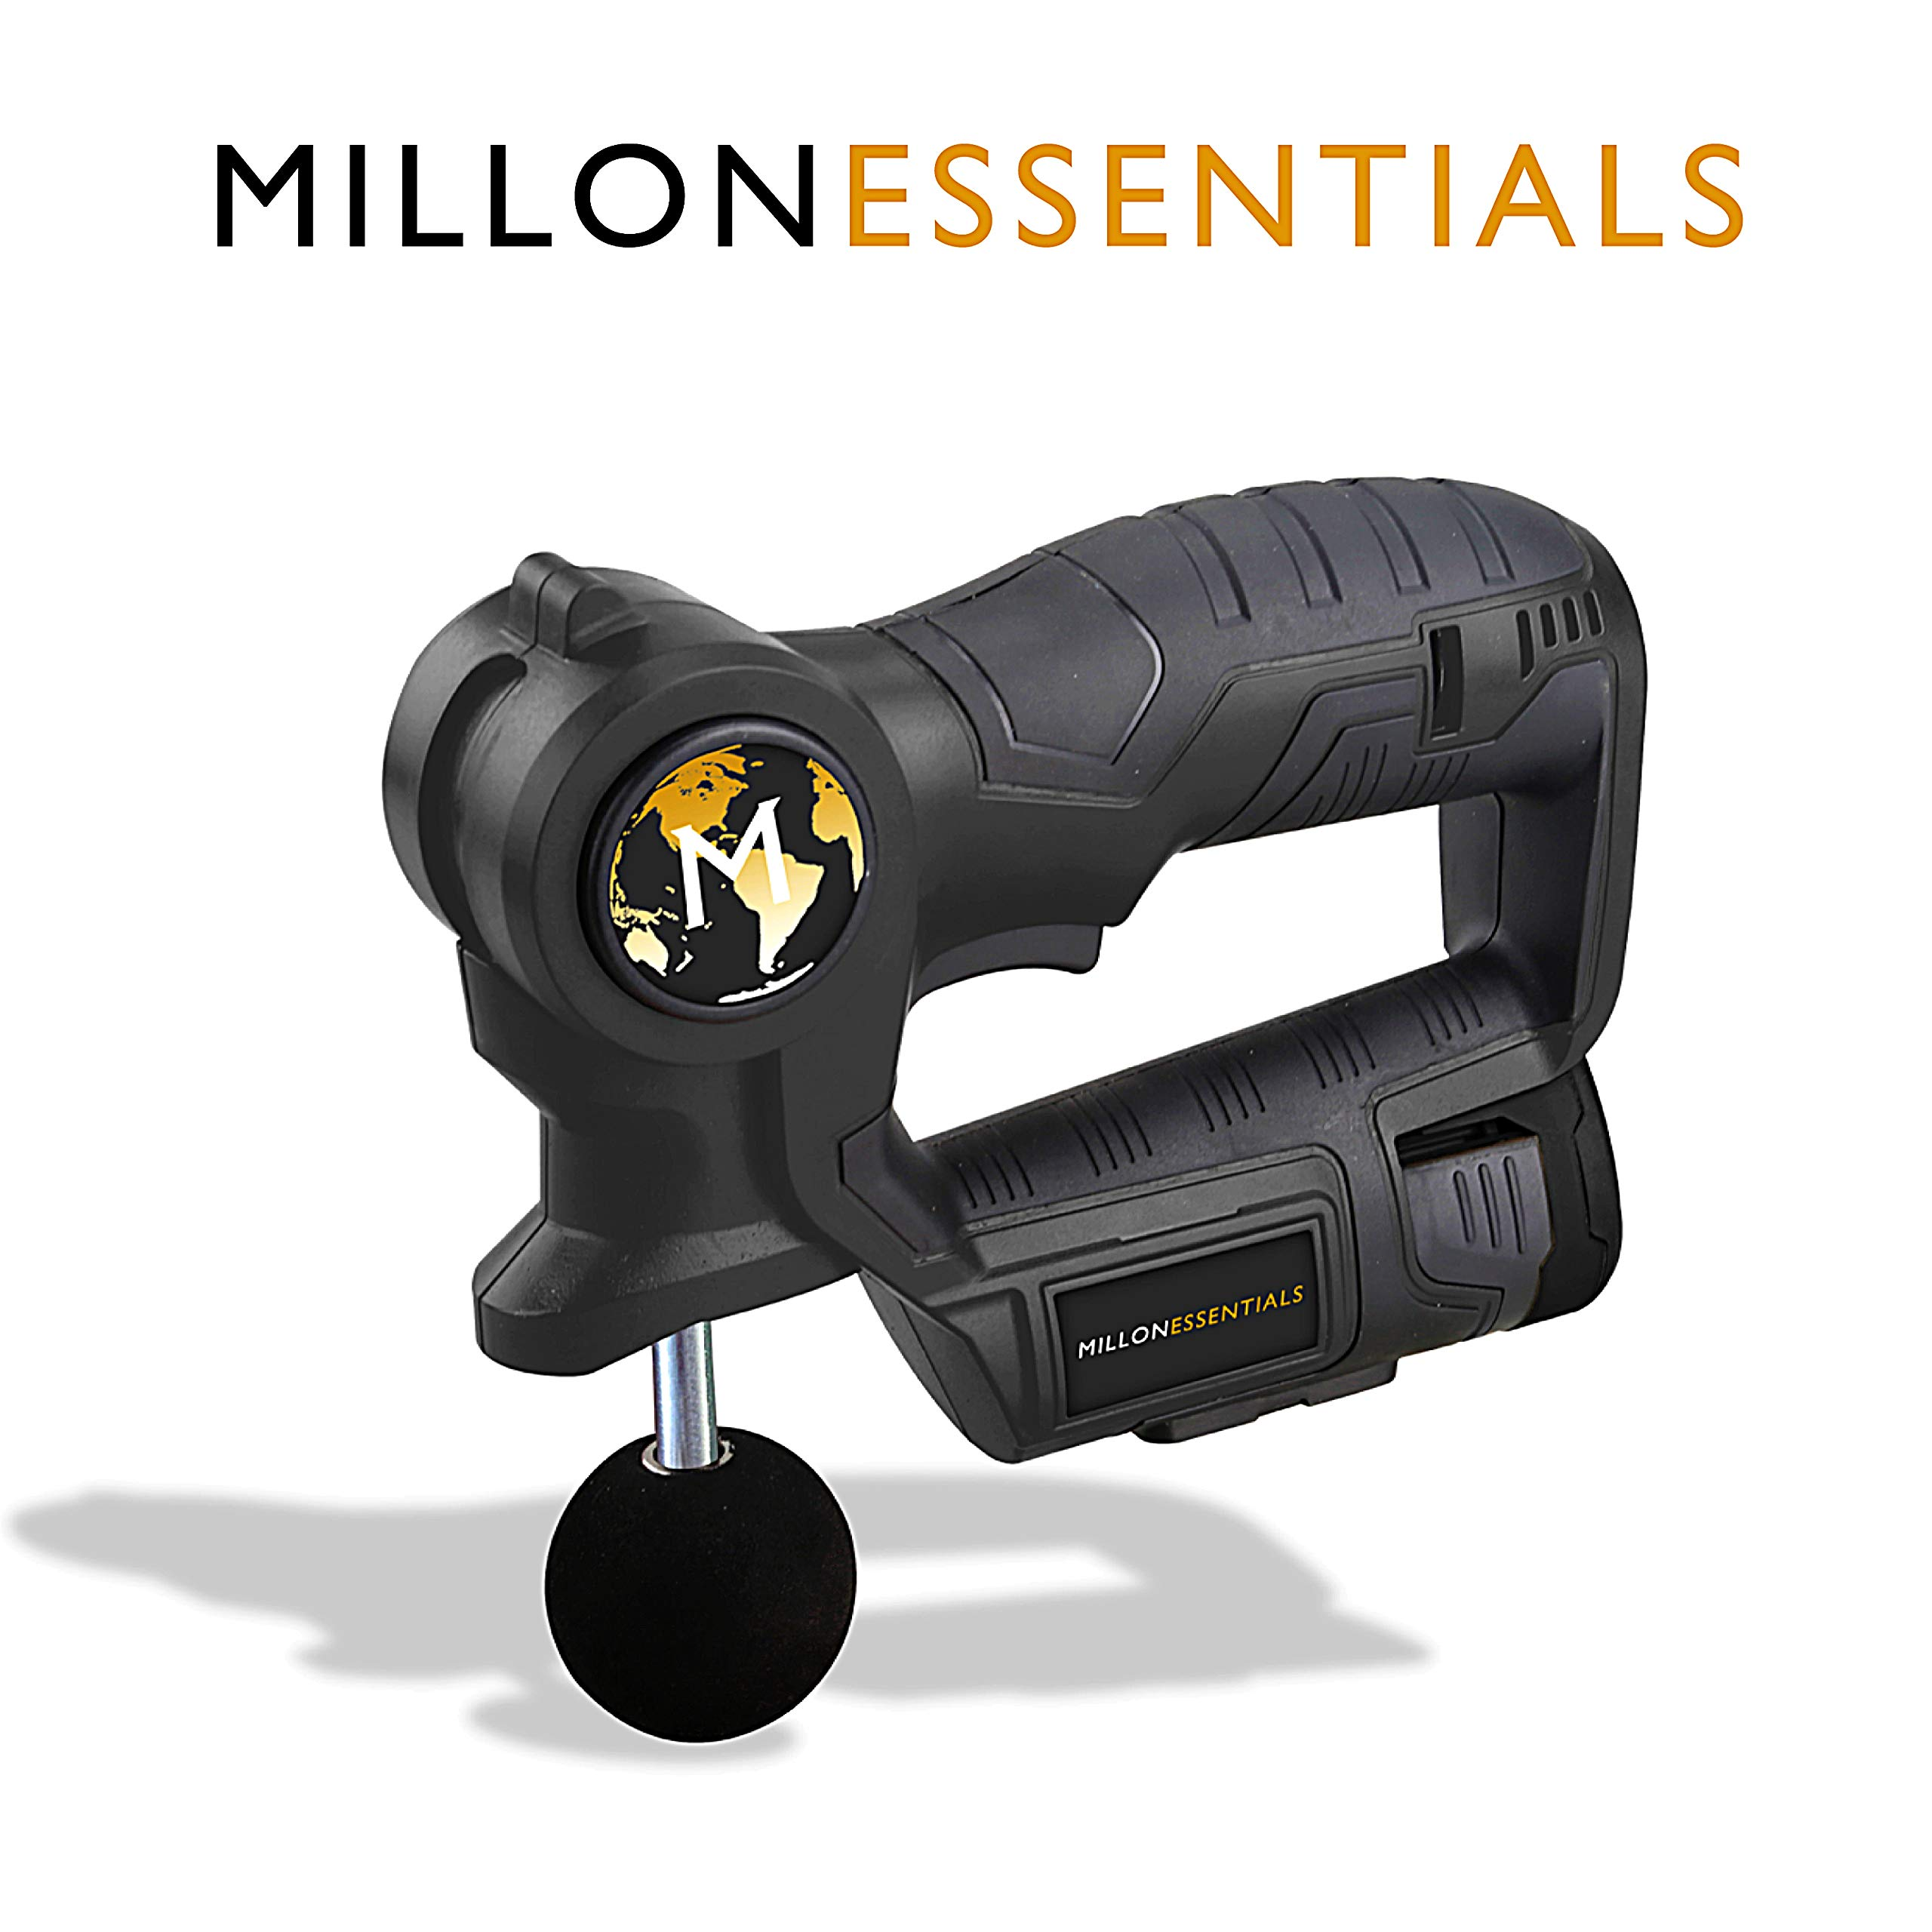 MillonEssentials Muscle Recovery Massage Gun - #1 Powerful Handheld Percussion Massager - Portable Deep Tissue Device – Cordless & Rechargeable Pain Relief Machine – Personal Body Stimulation Therapy